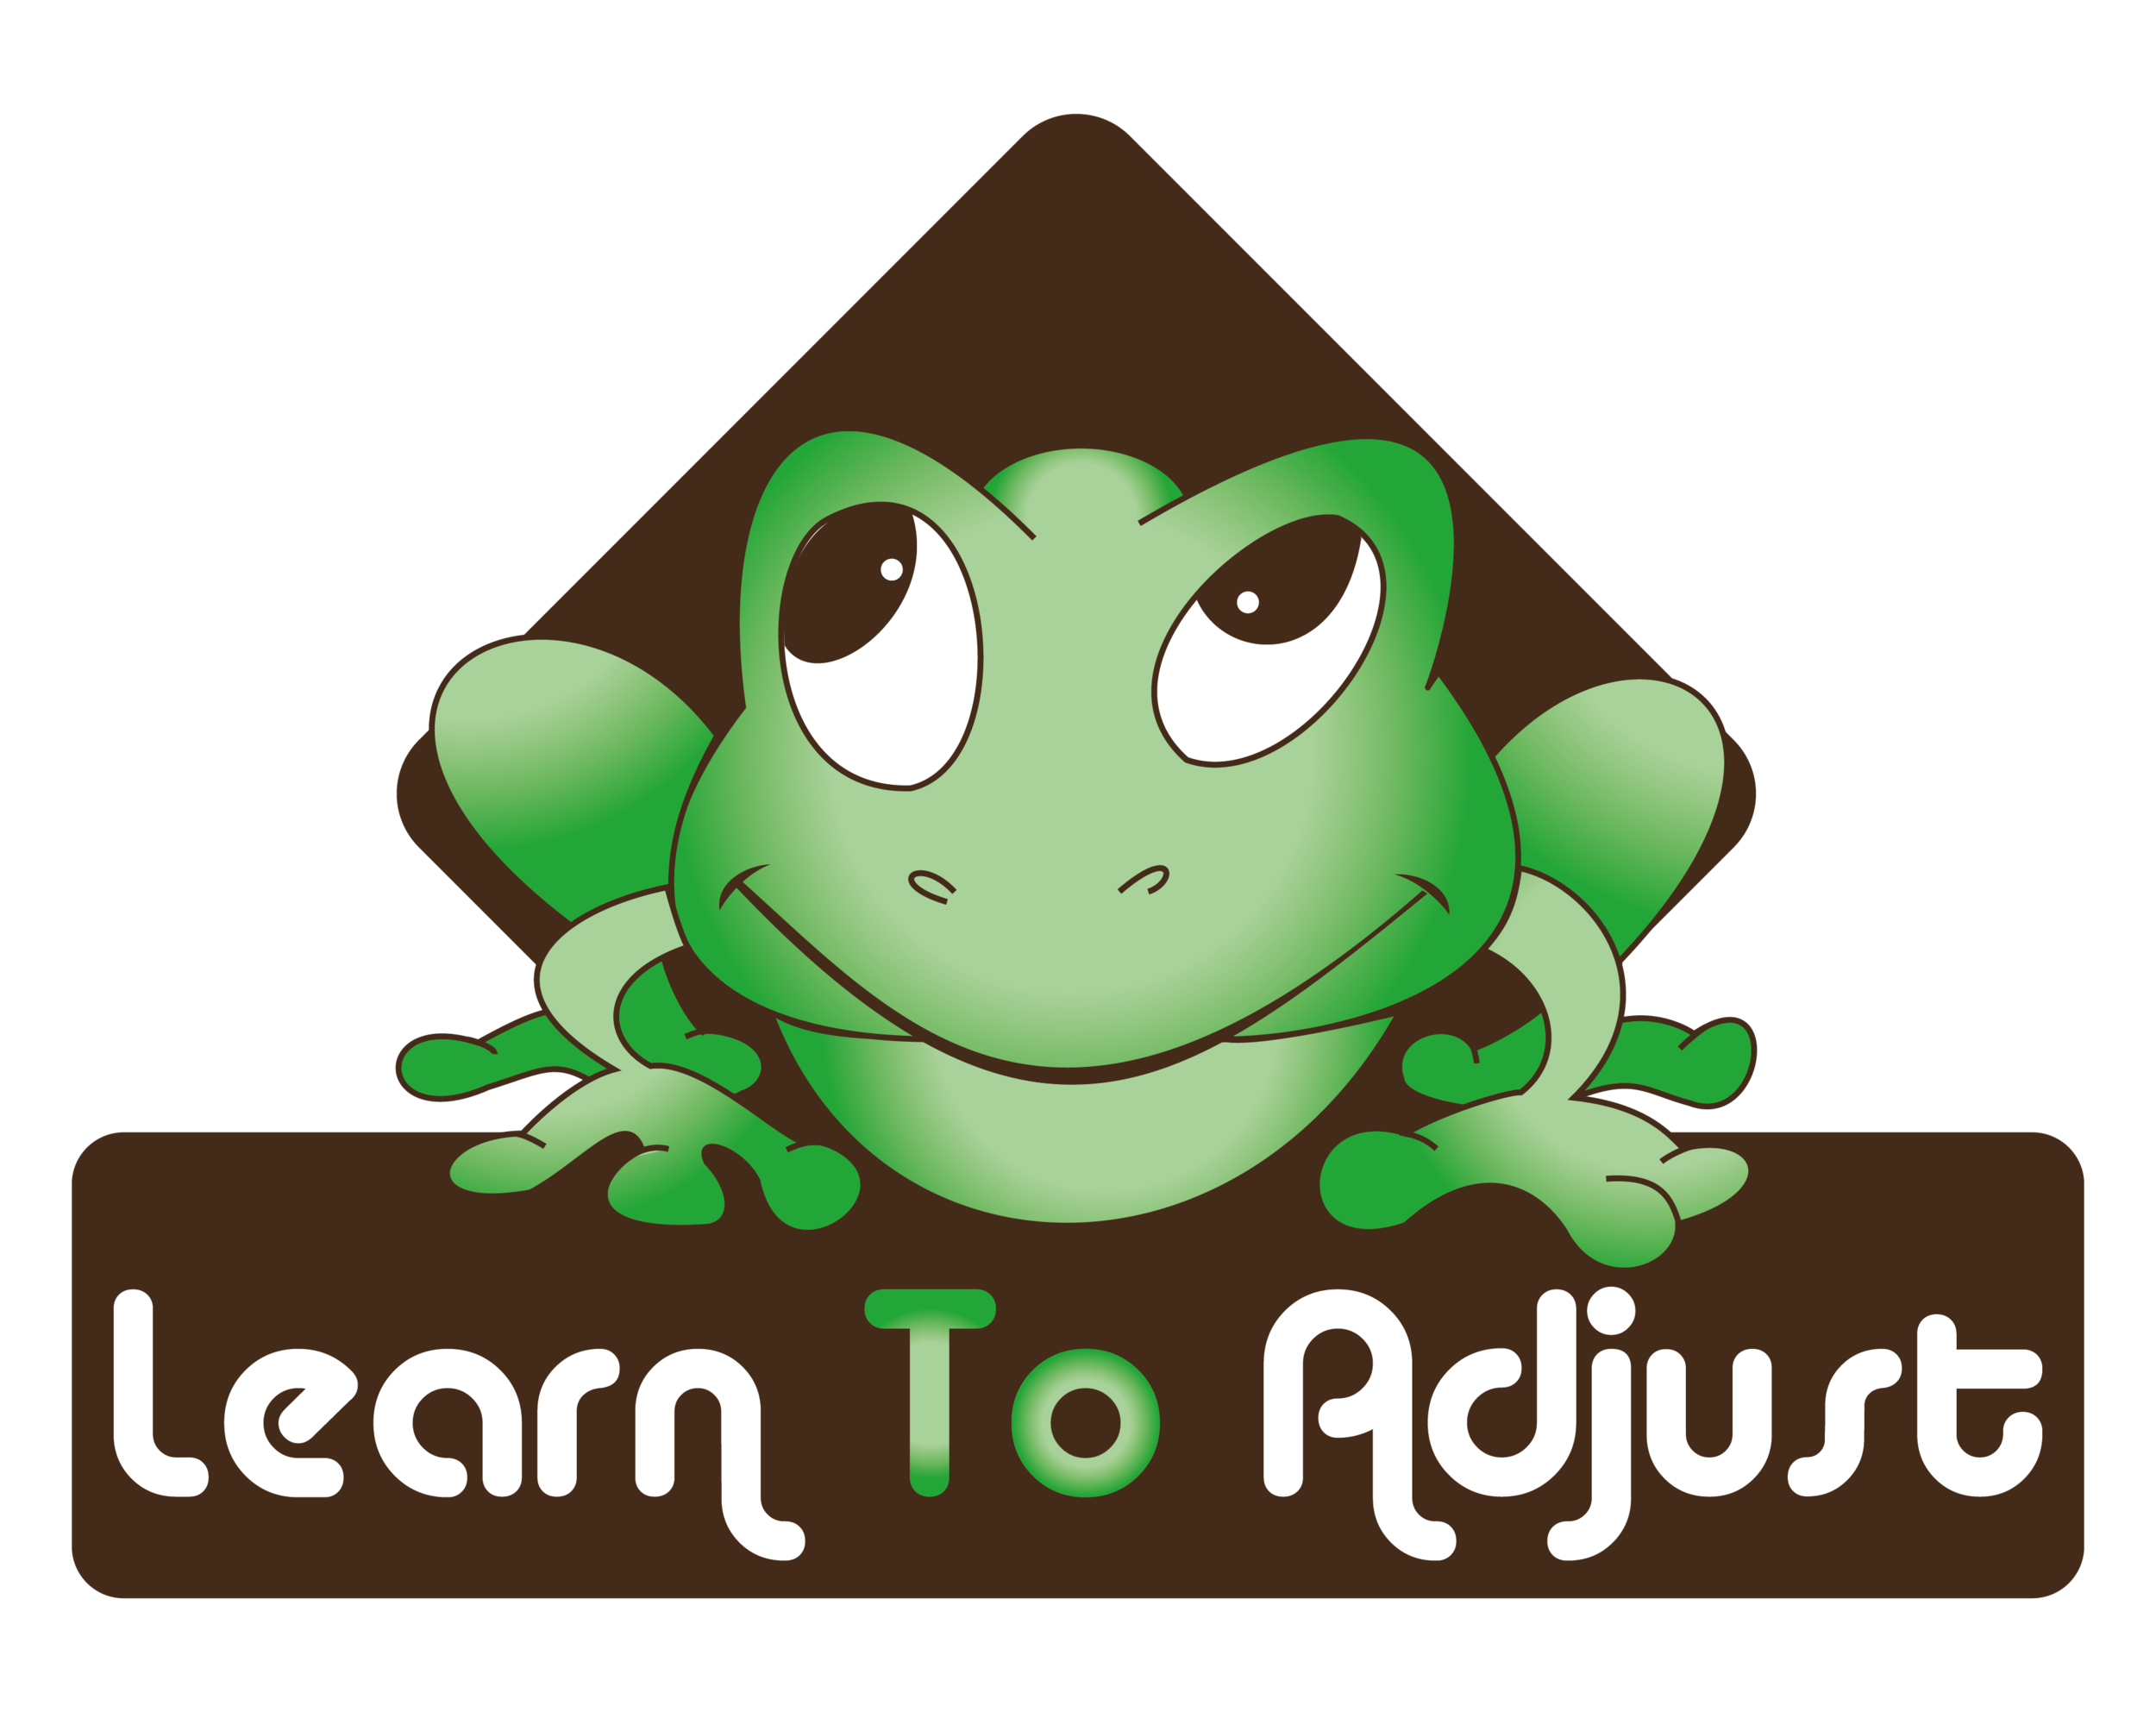 Learn to Adjust! - Find out more about Angela Henderson and Learn to Adjust!